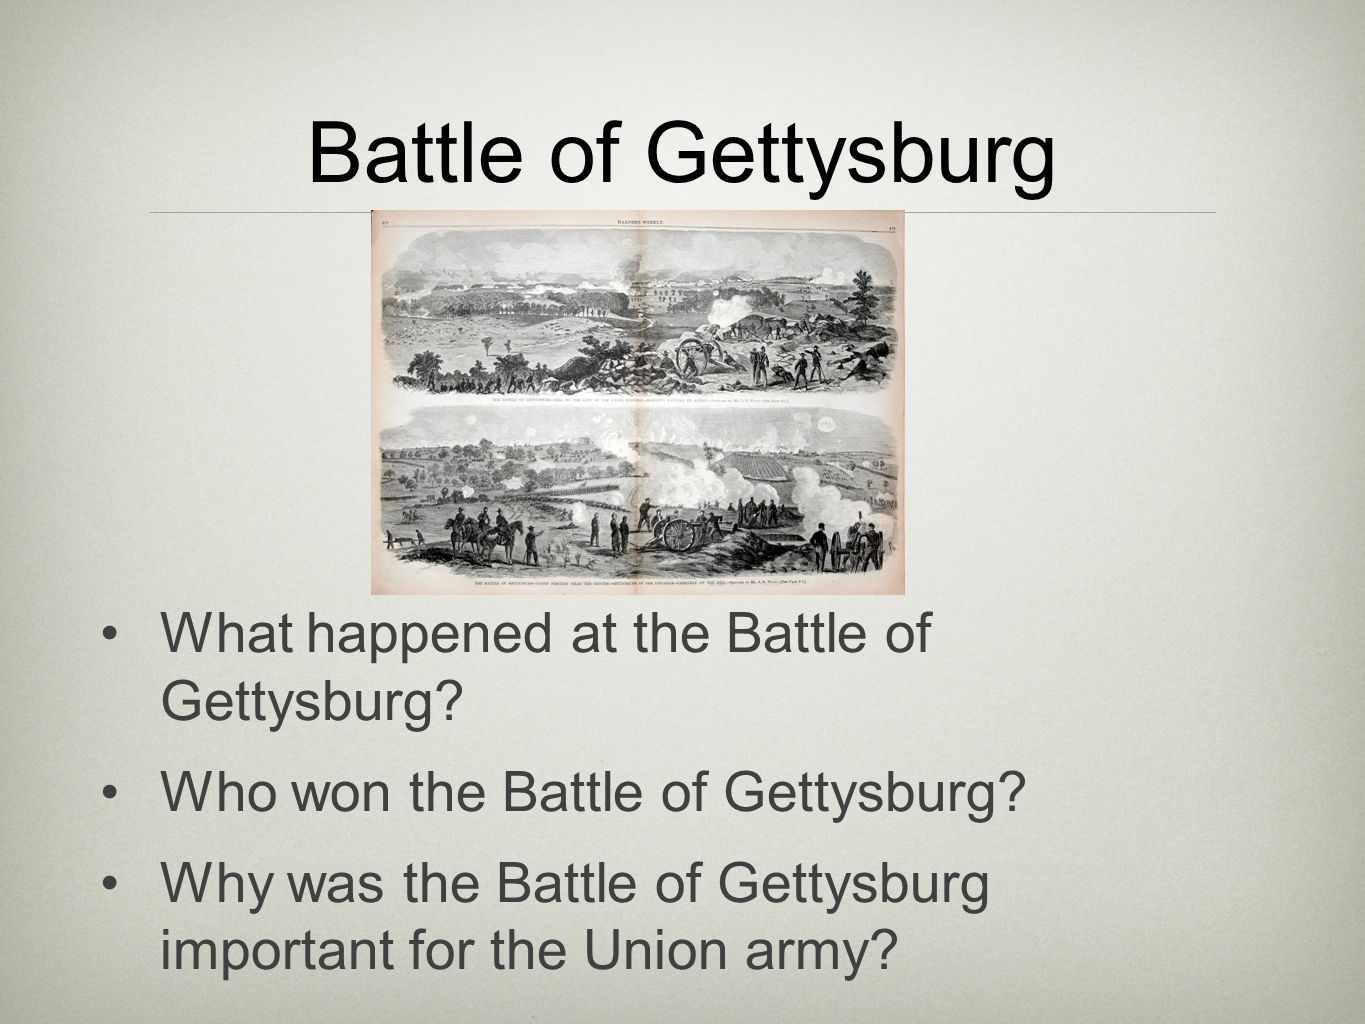 What happened at the Battle of Gettysburg? Who won the Battle of Gettysburg? Why was the Battle of Gettysburg important for the Union army?